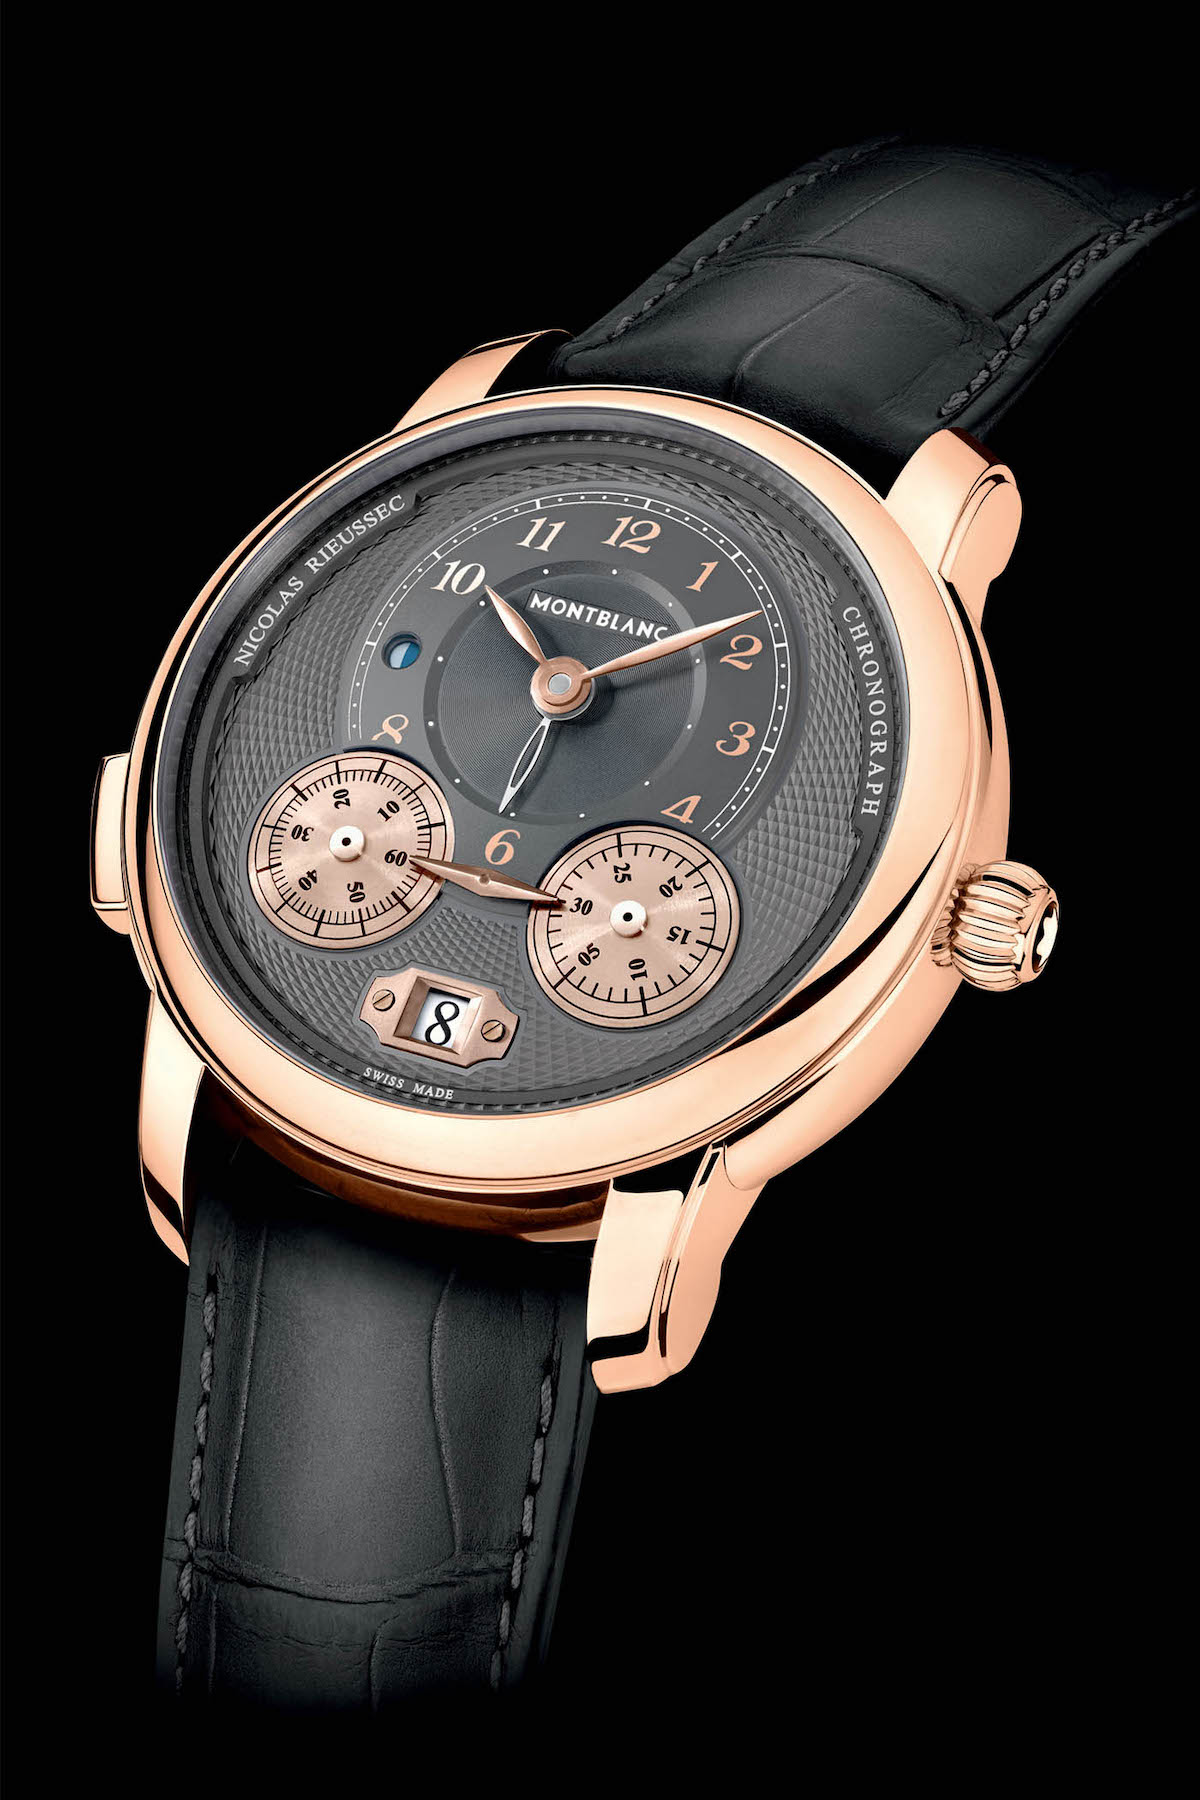 pre-sihh-2019-montblanc-star-legacy-nicolas-rieussec-anthracite-dial-5.jpg